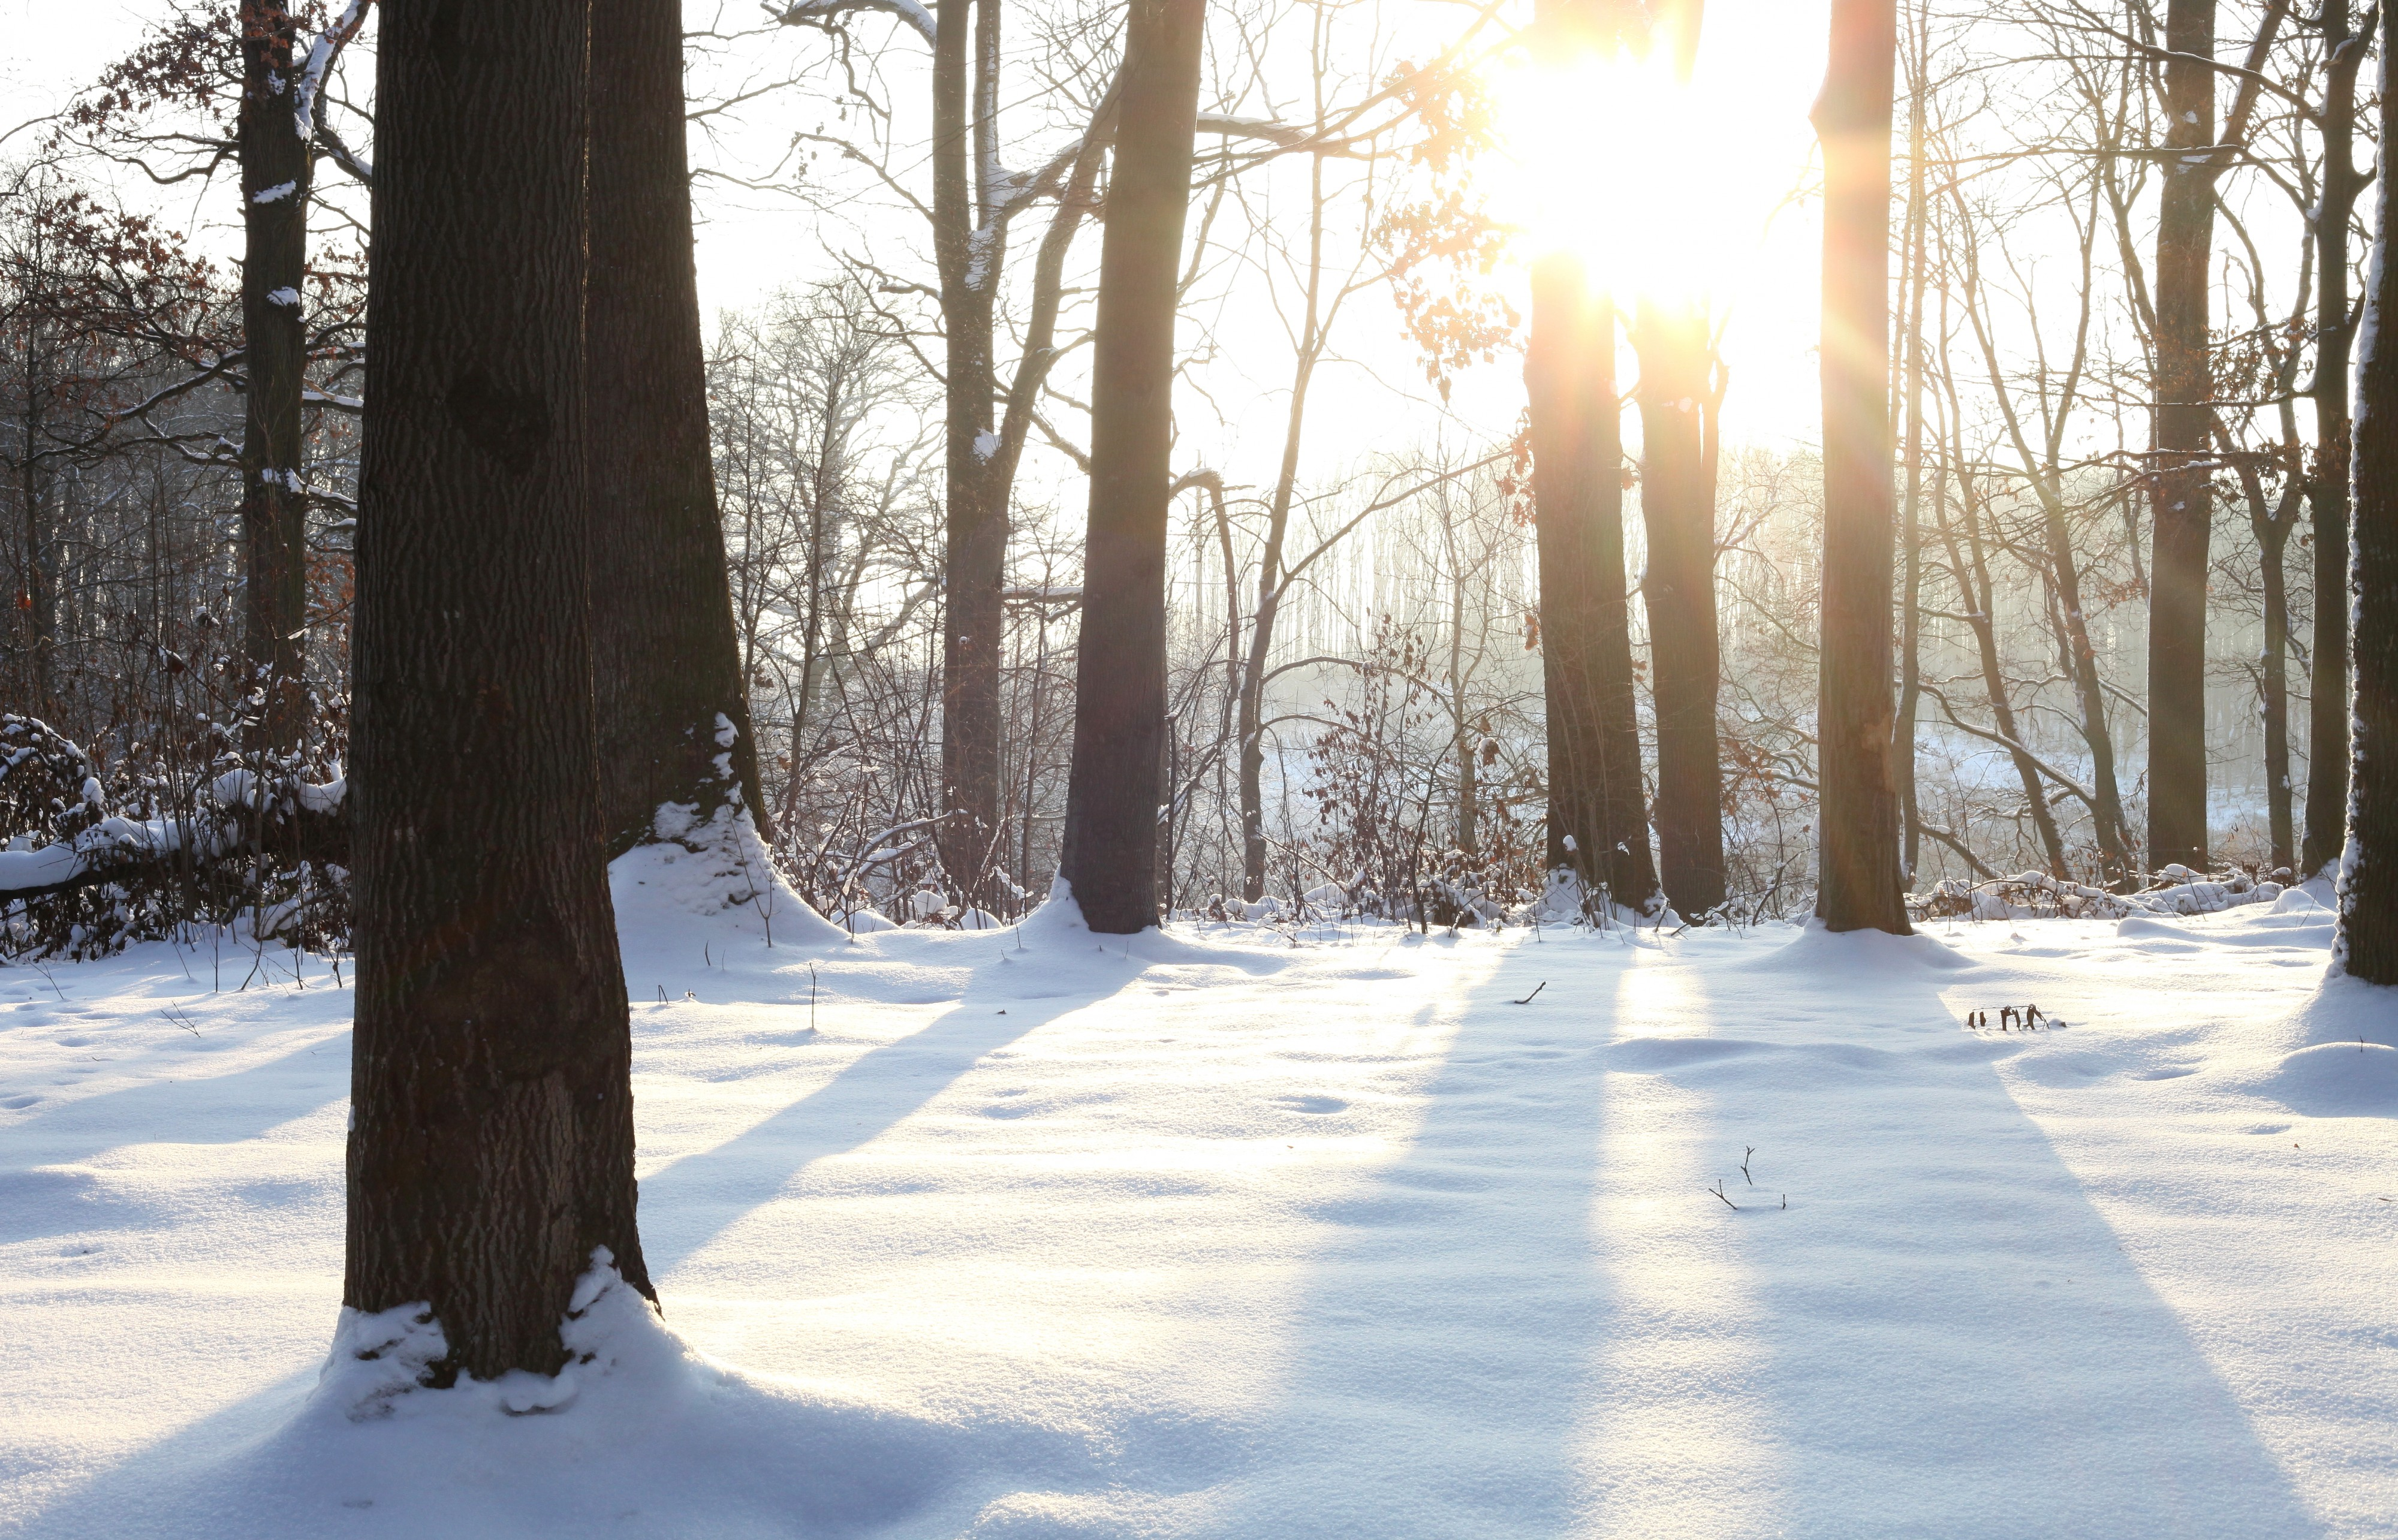 God's creation: snow in the forest in Lviv region, picture 5